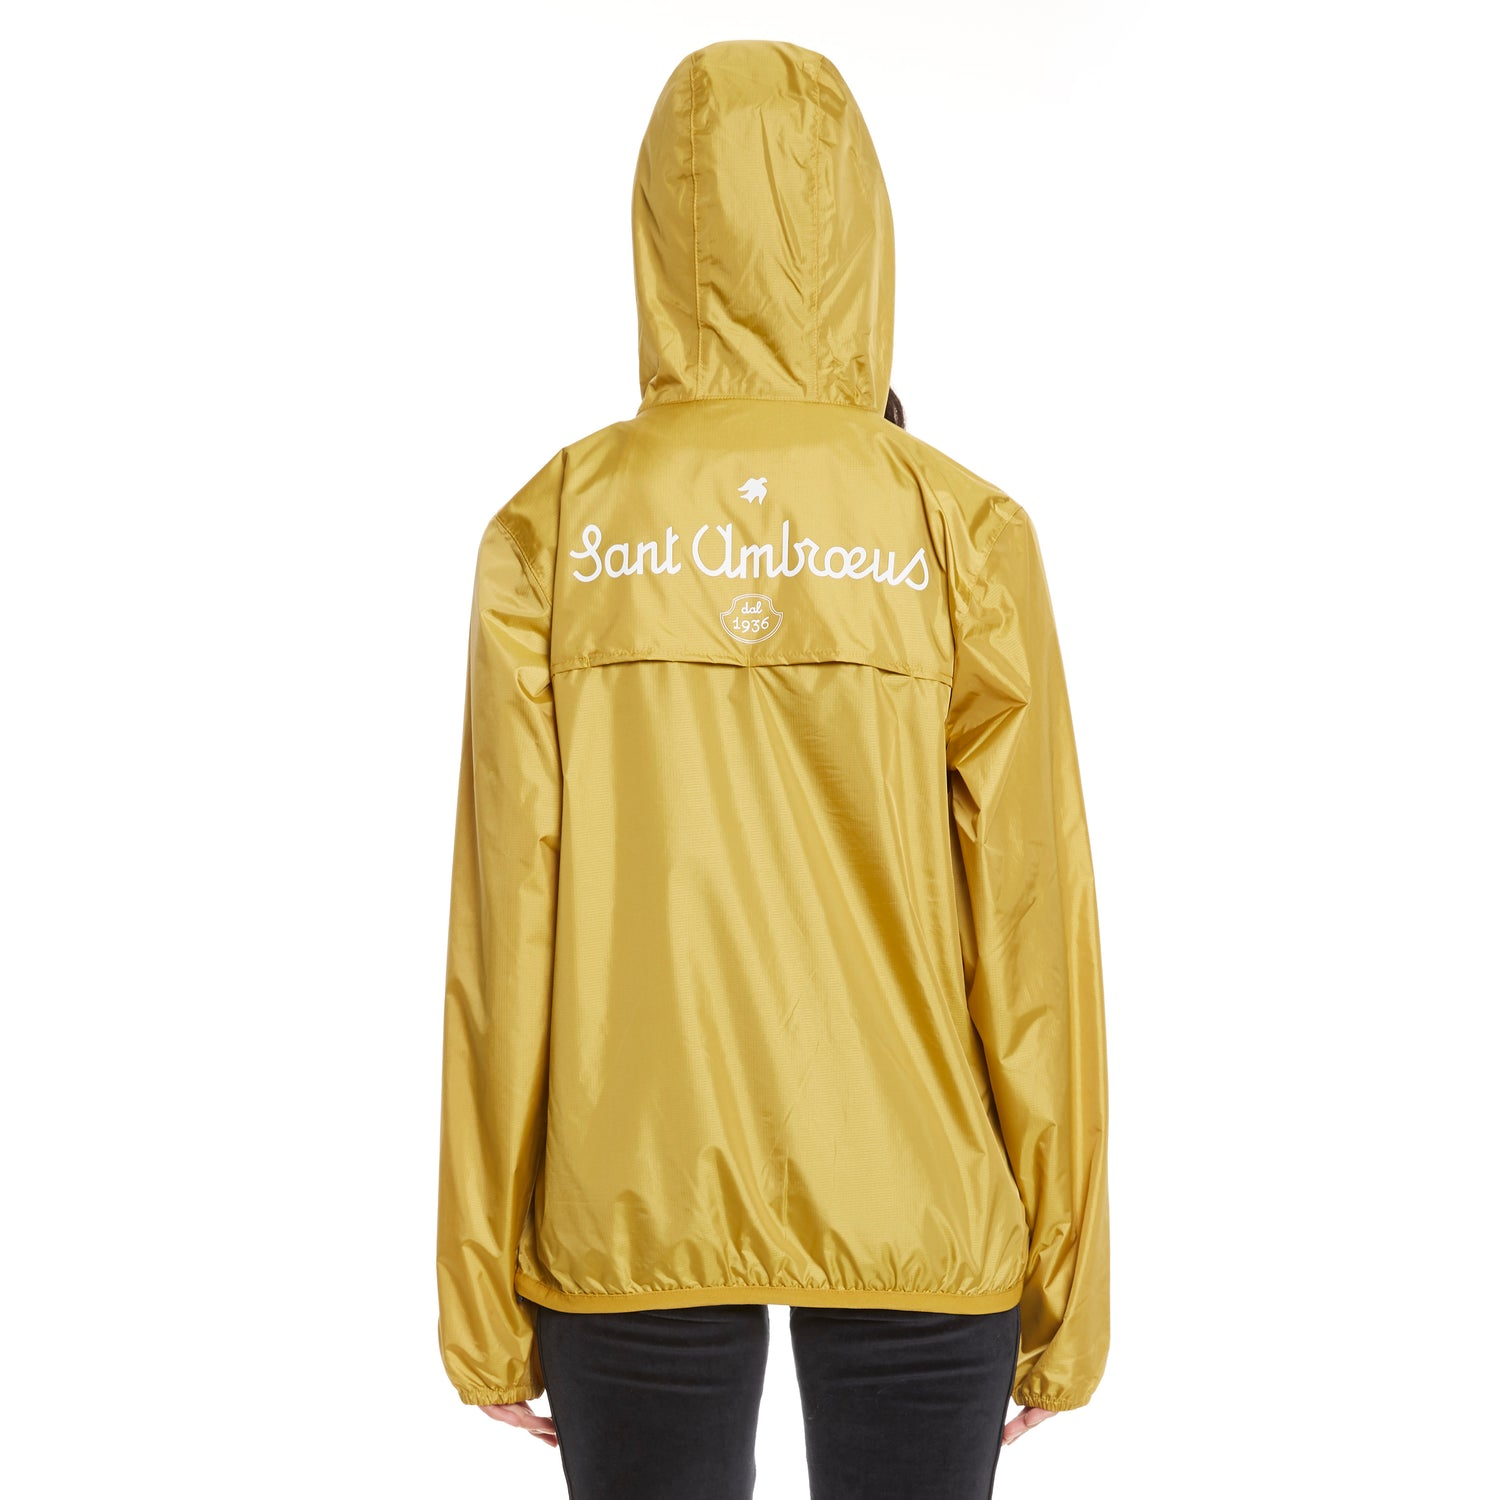 Women's Le Vrai 3.0 Leon Half Zip X Sant Ambroeus Jacket Yellow Gold Metal